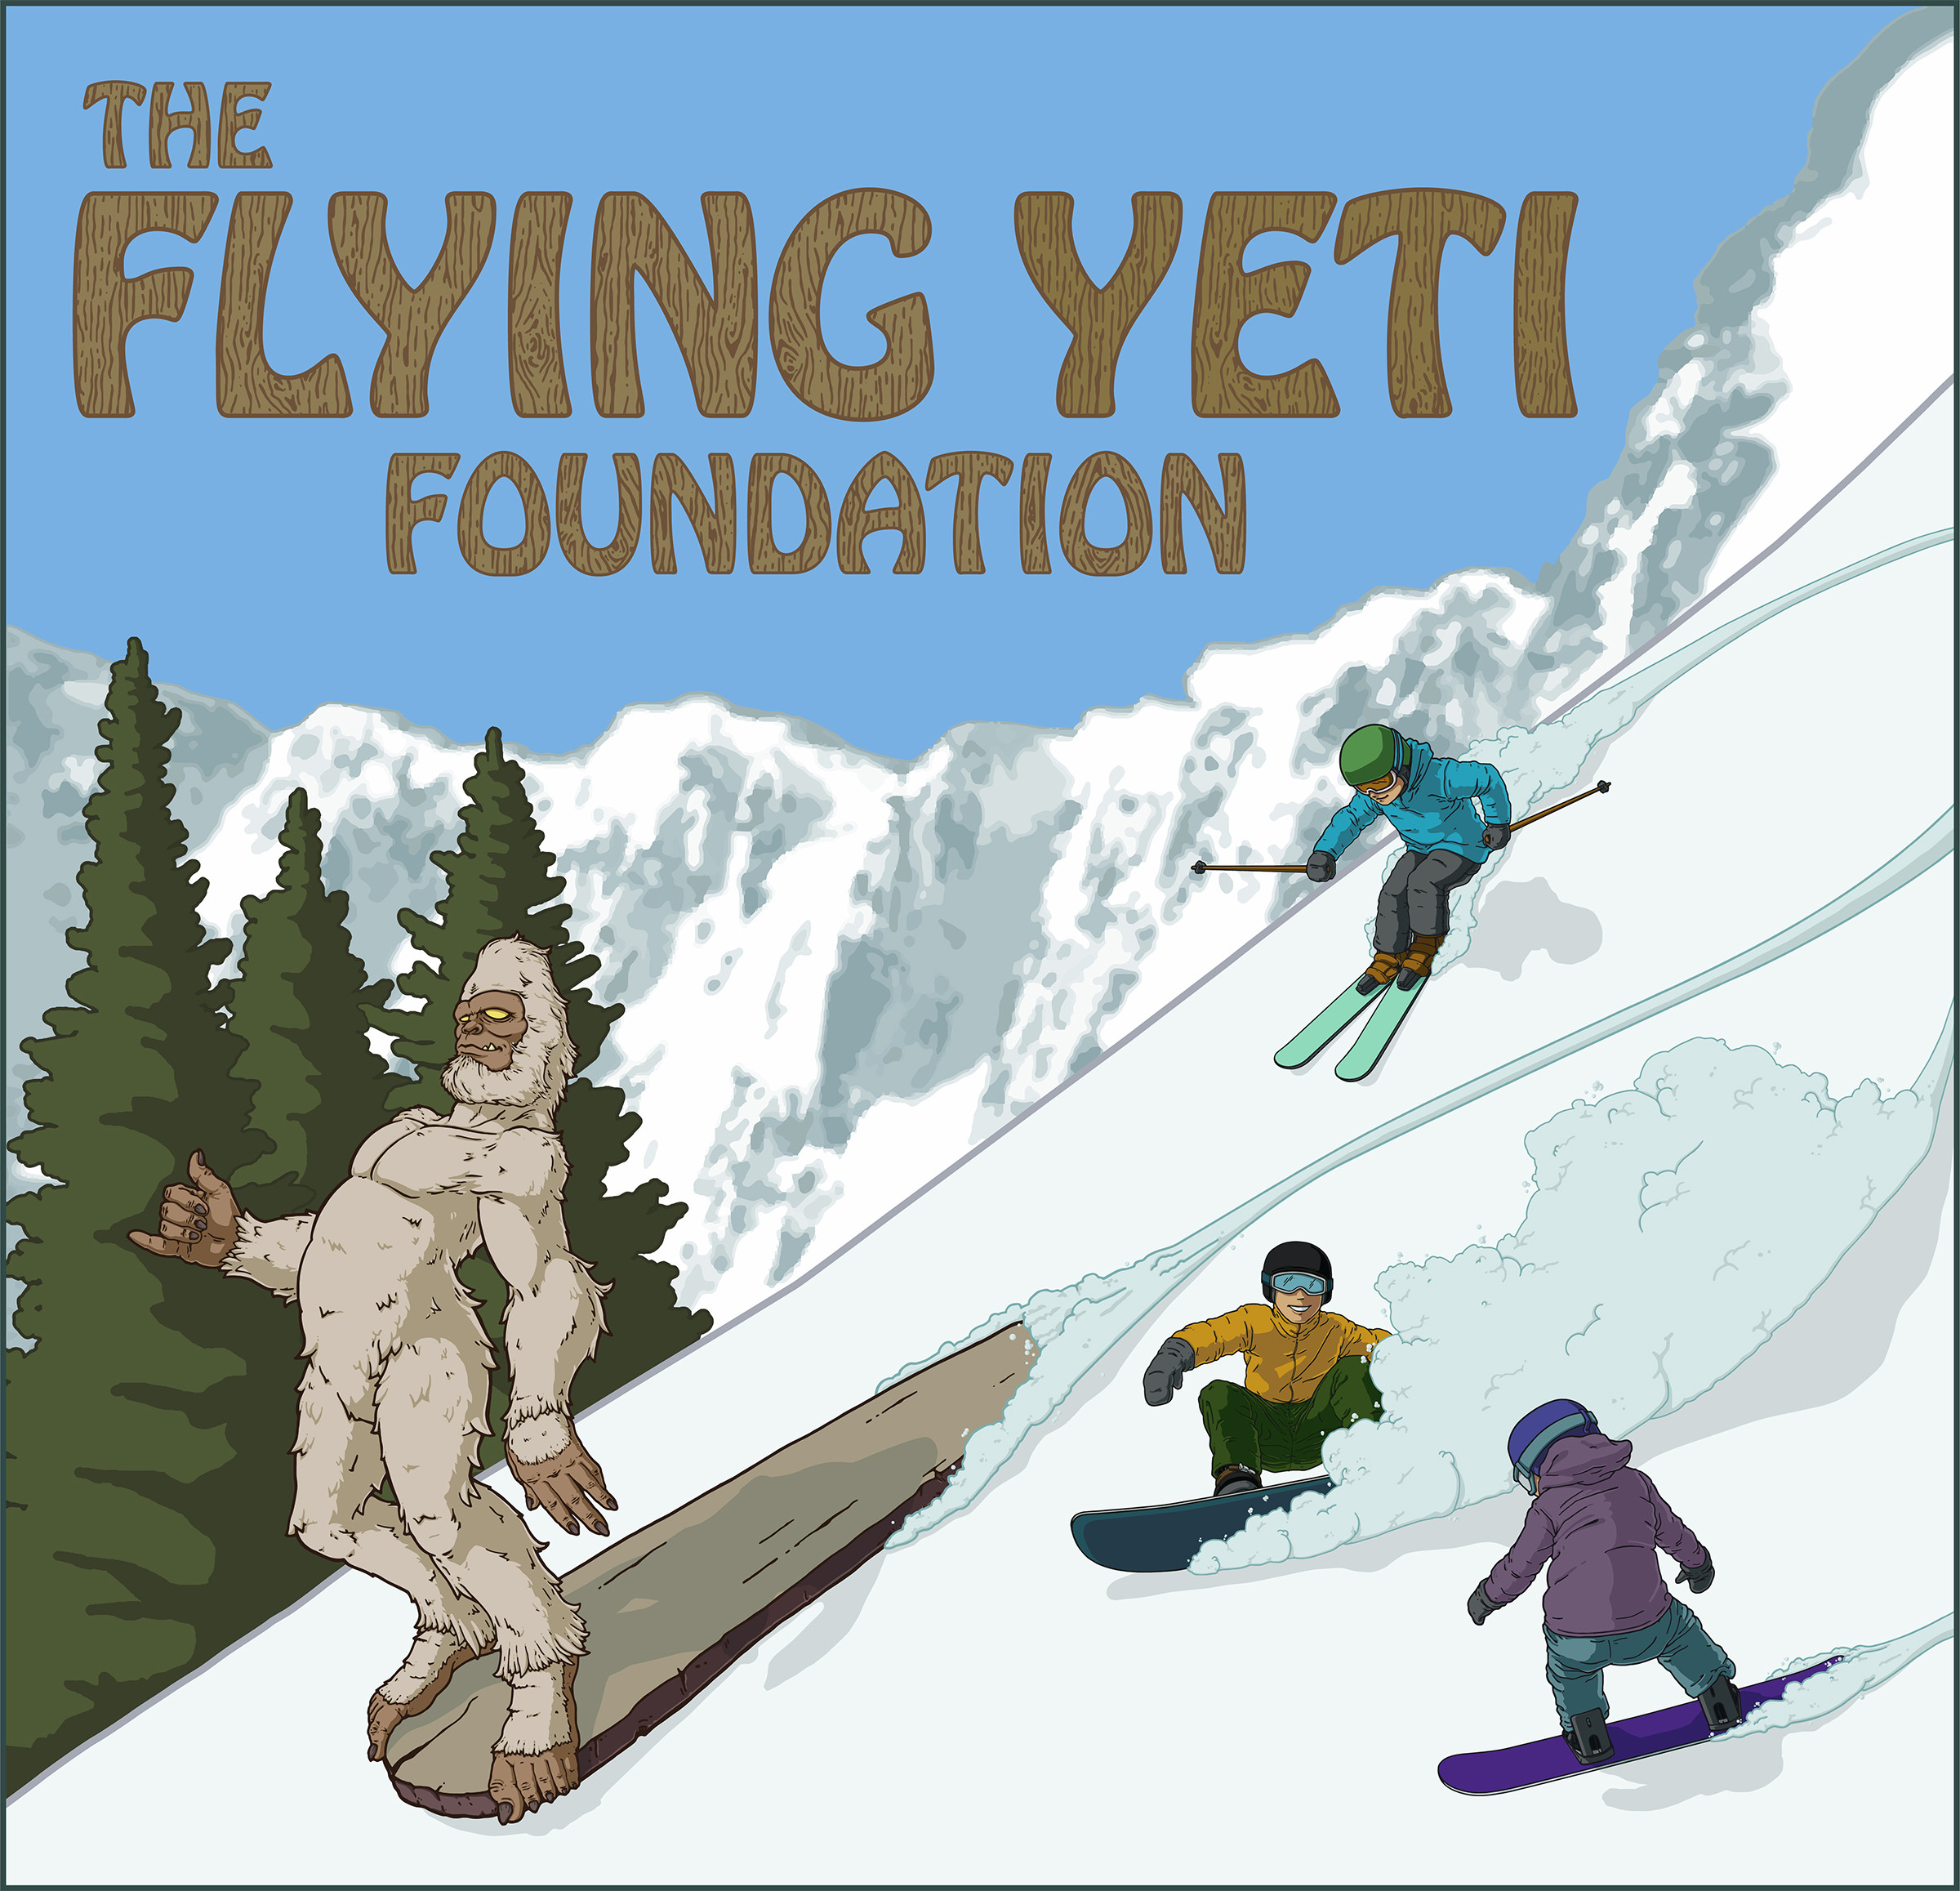 This was done for The Flying Yeti Foundation. Original drawing was done in Photoshop. Final image was done in Illustrator.